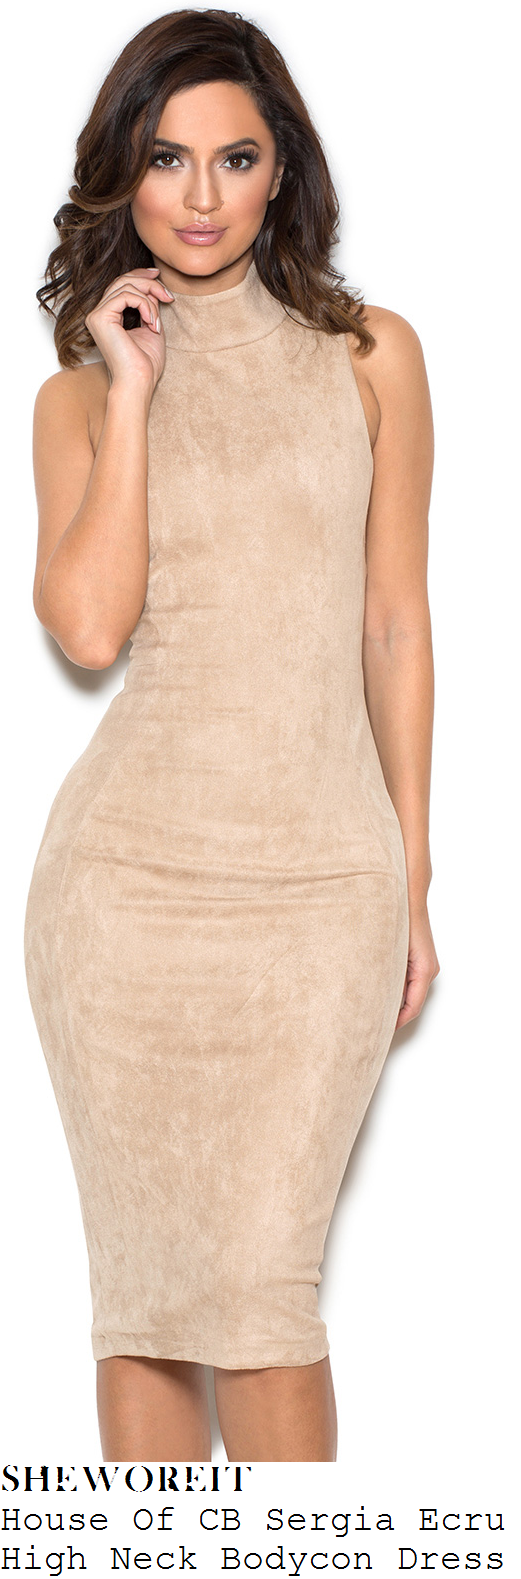 vicky-pattison-house-of-cb-sergia-ecru-sand-high-neck-suedette-bodycon-dress